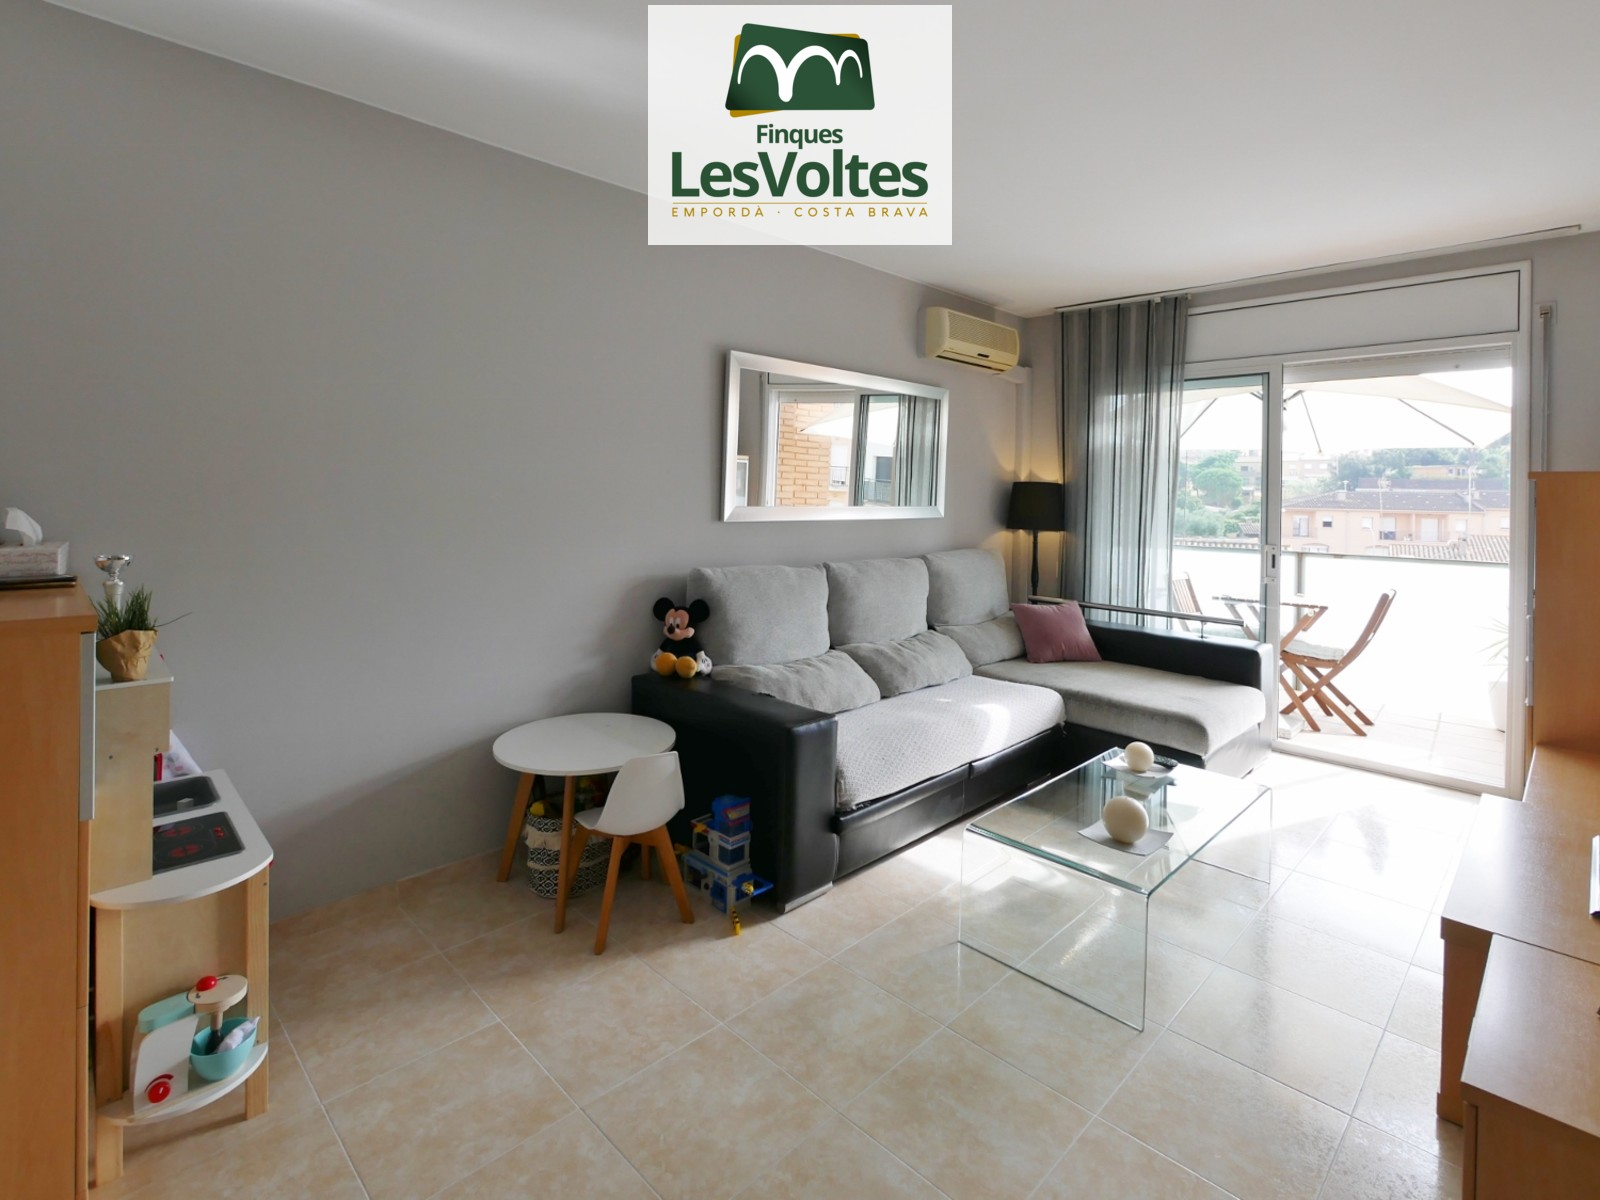 3-bedroom duplex penthouse for sale in Palafrugell. Parking space included and community with elevator.